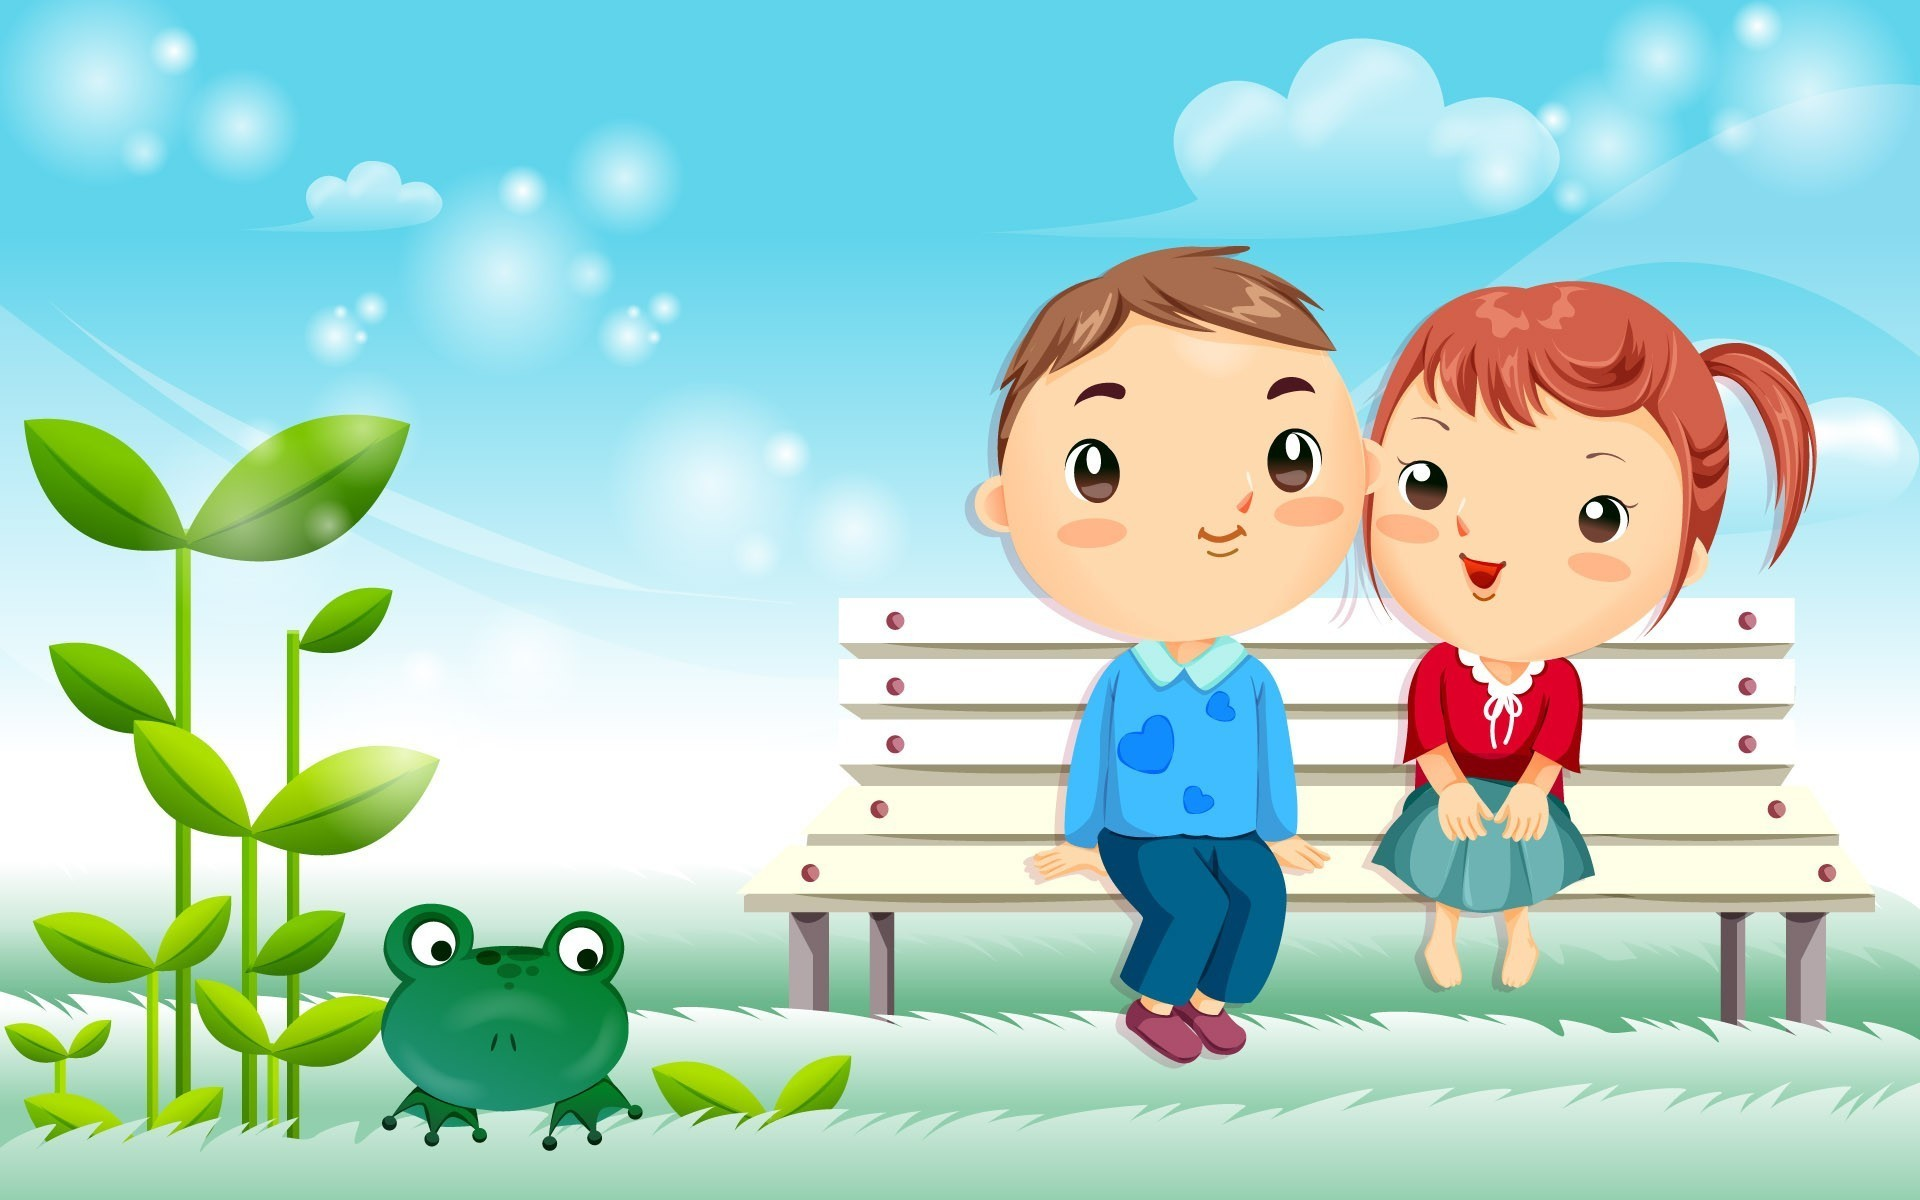 cute Love Wallpaper cartoon : Love cartoon Background - Wallpaper, High Definition, High Quality, Widescreen